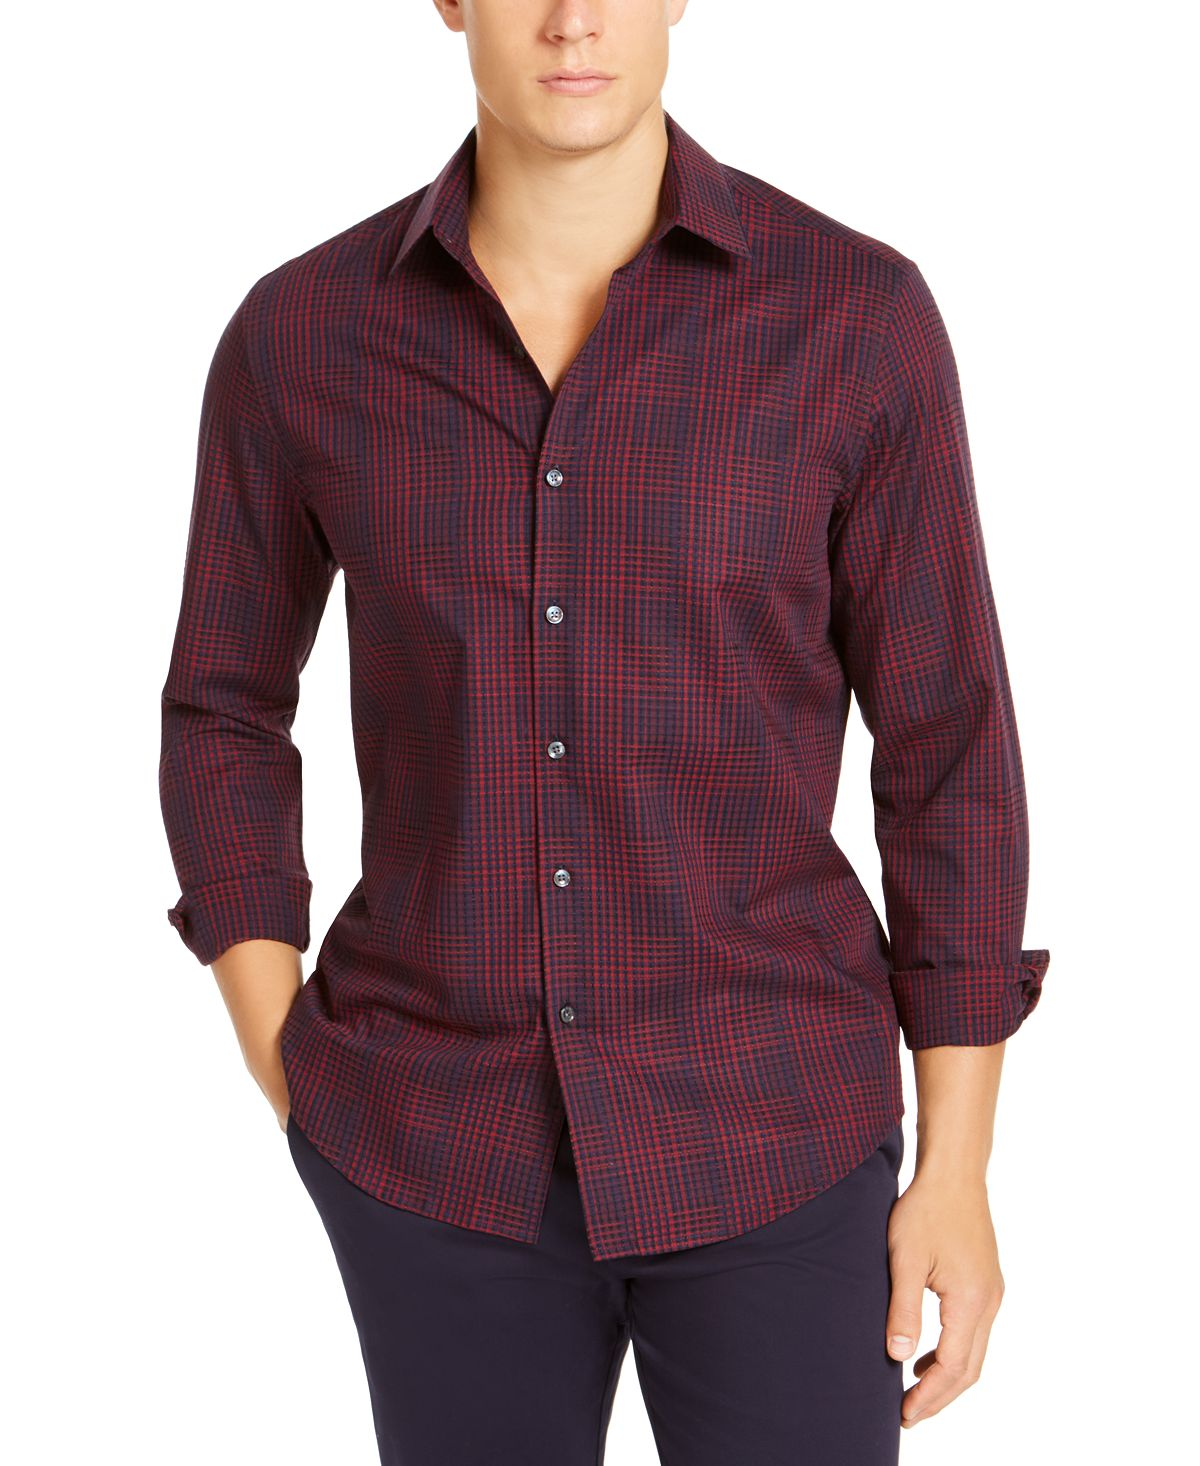 Tasso Elba Stretch Dobby Woven Shirt Red/navy Combo